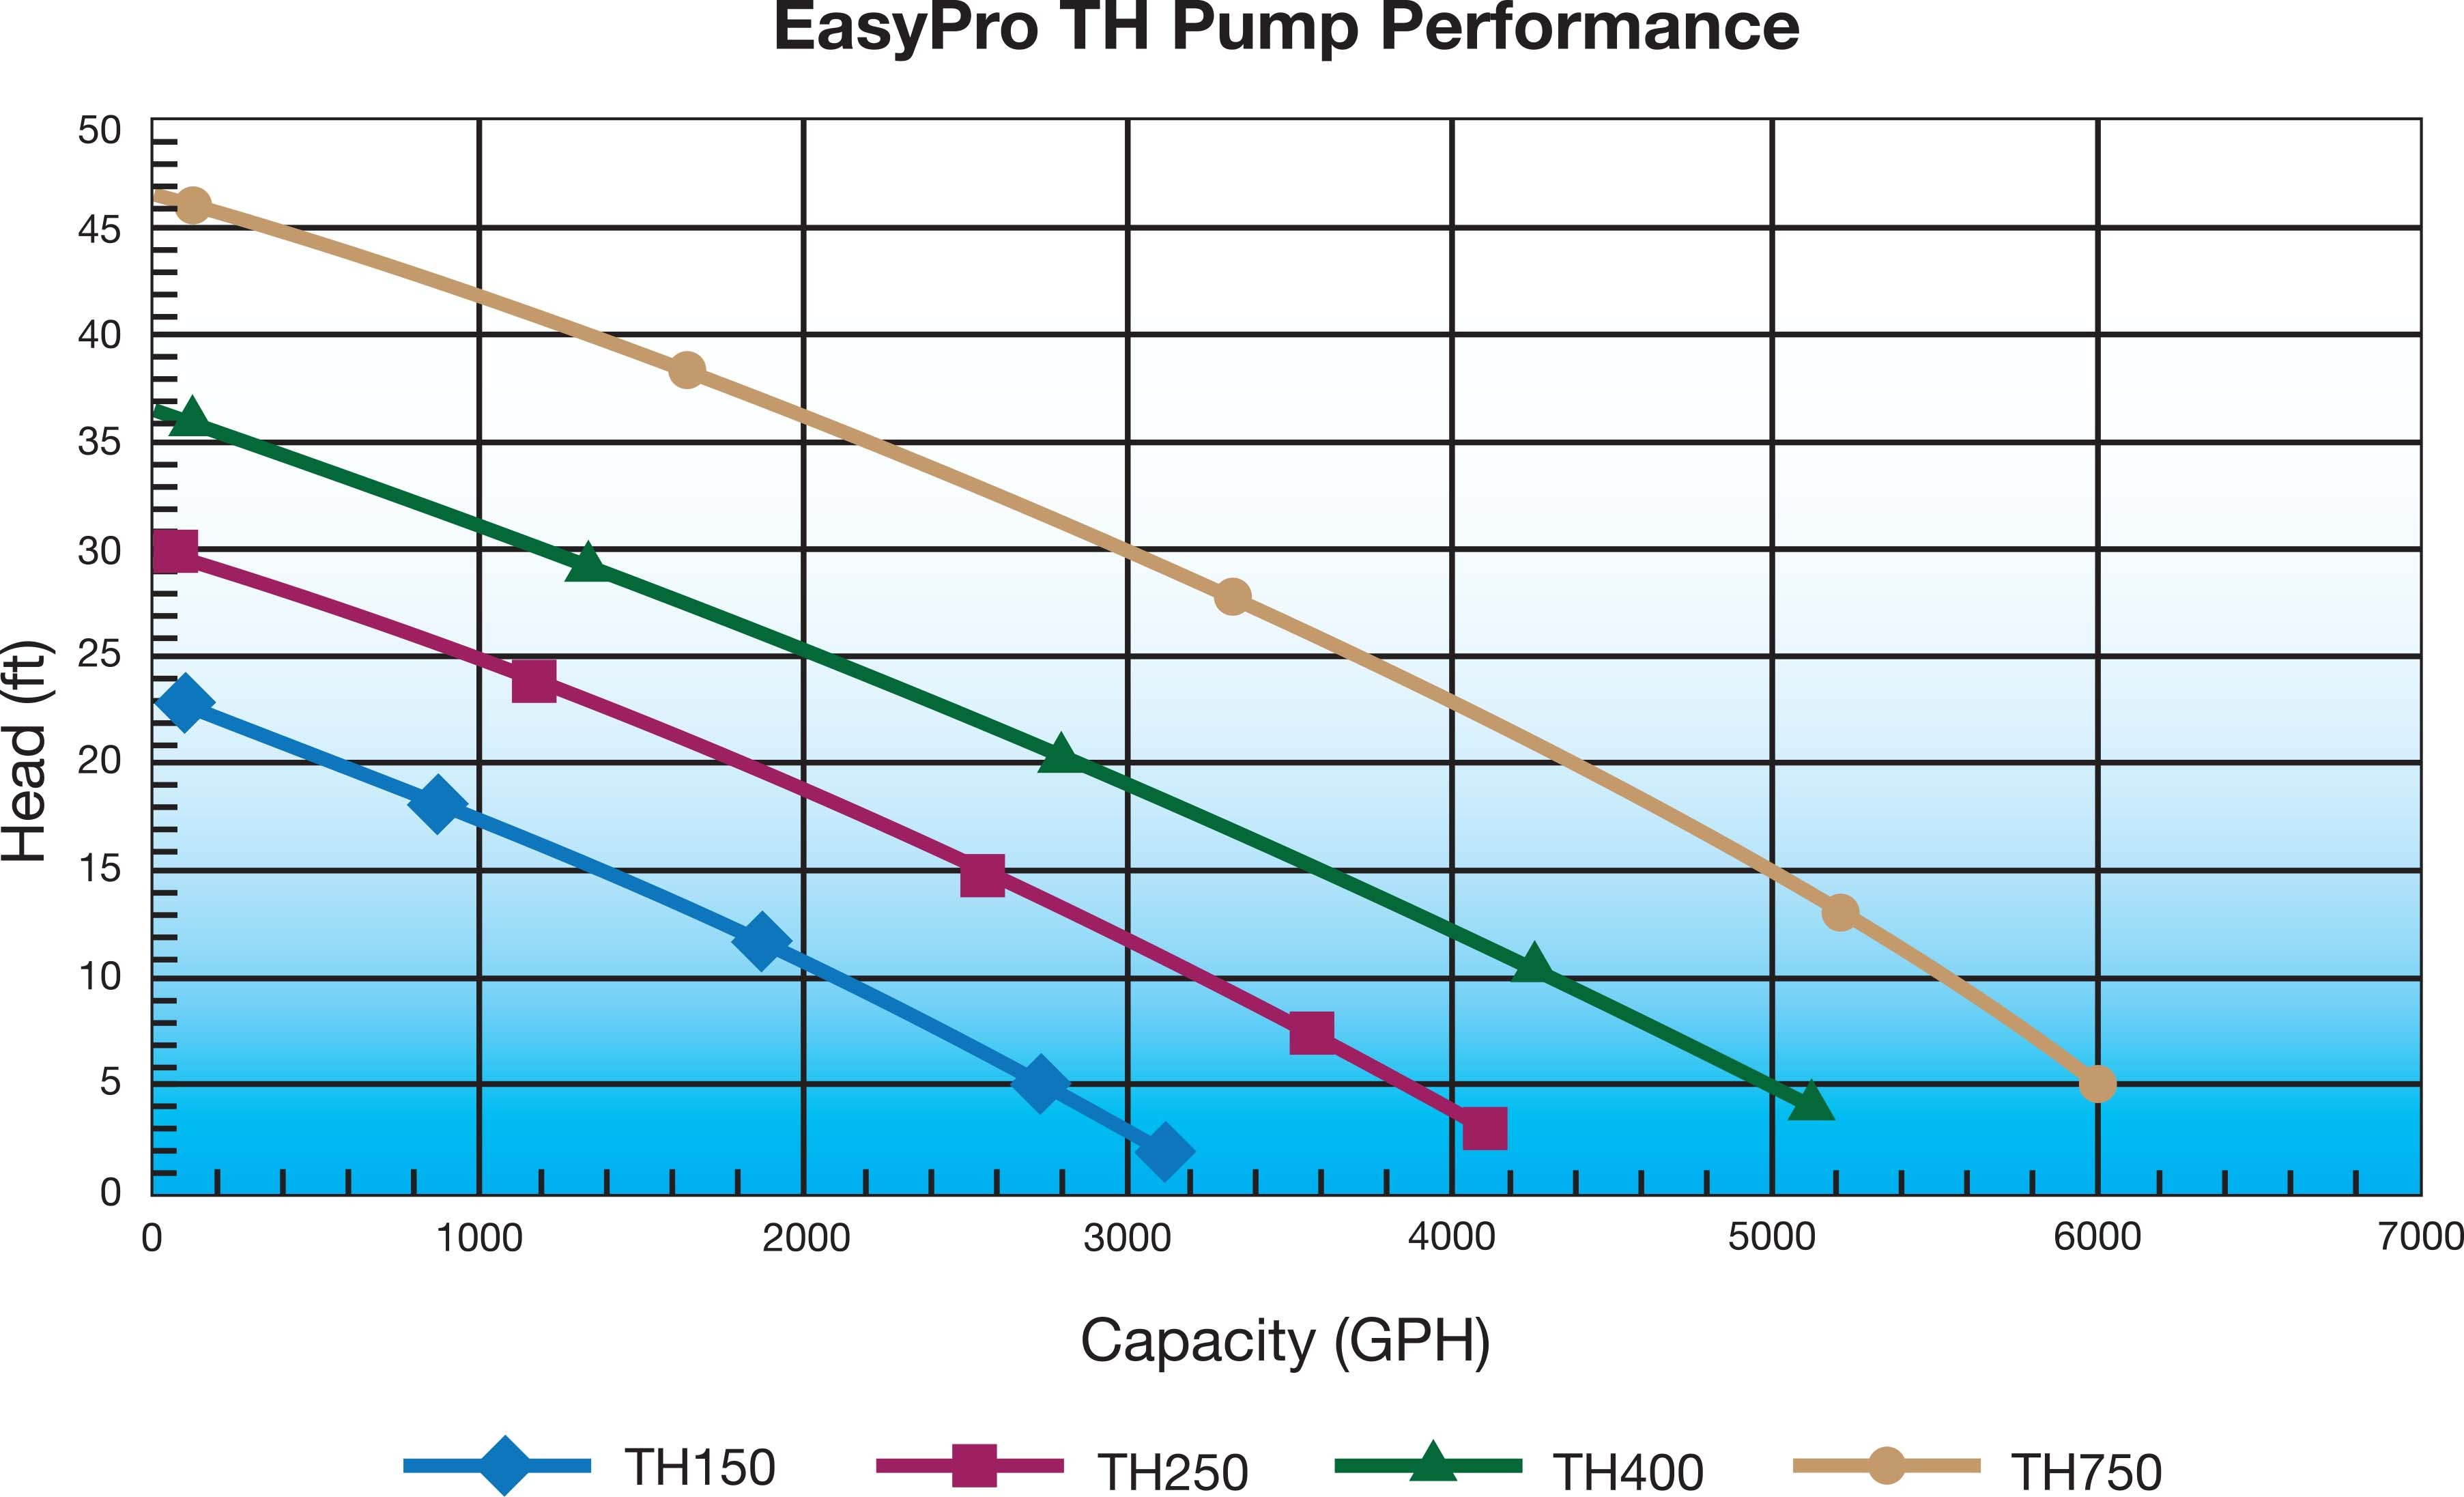 th-easypro-pumps.jpg